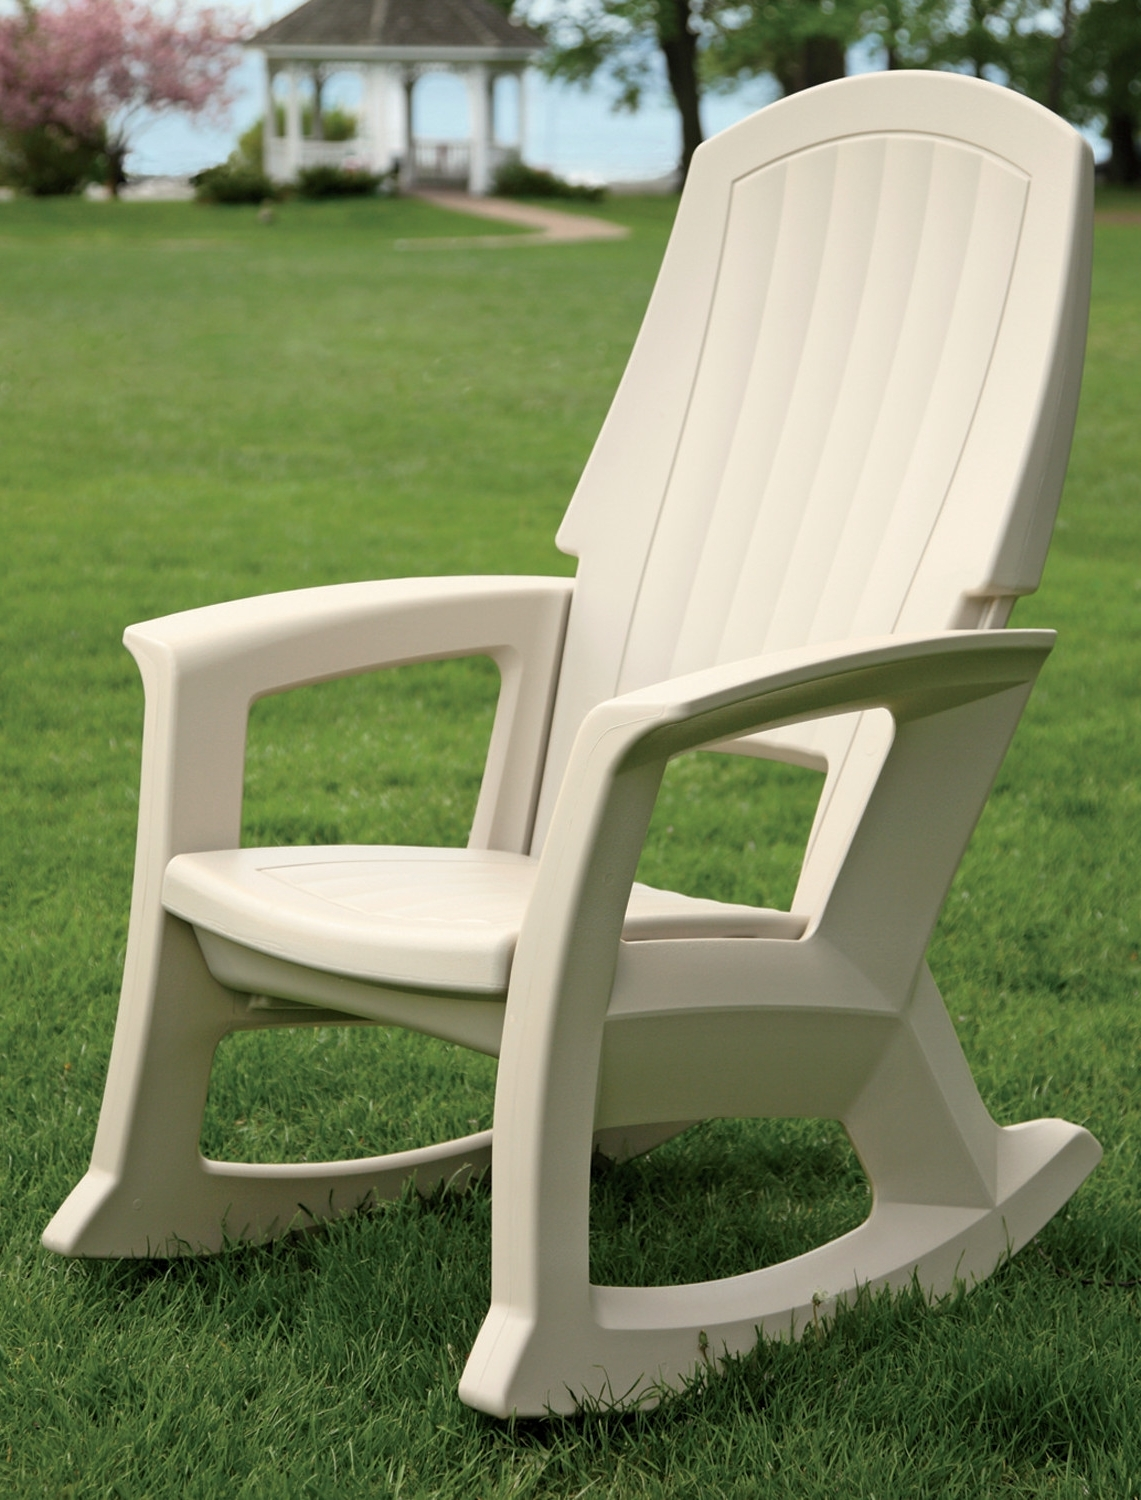 Best And Newest Patio Rocking Chair Oversized Outdoor Chairs Best For Small Nursery With Oversized Patio Rocking Chairs (View 4 of 20)